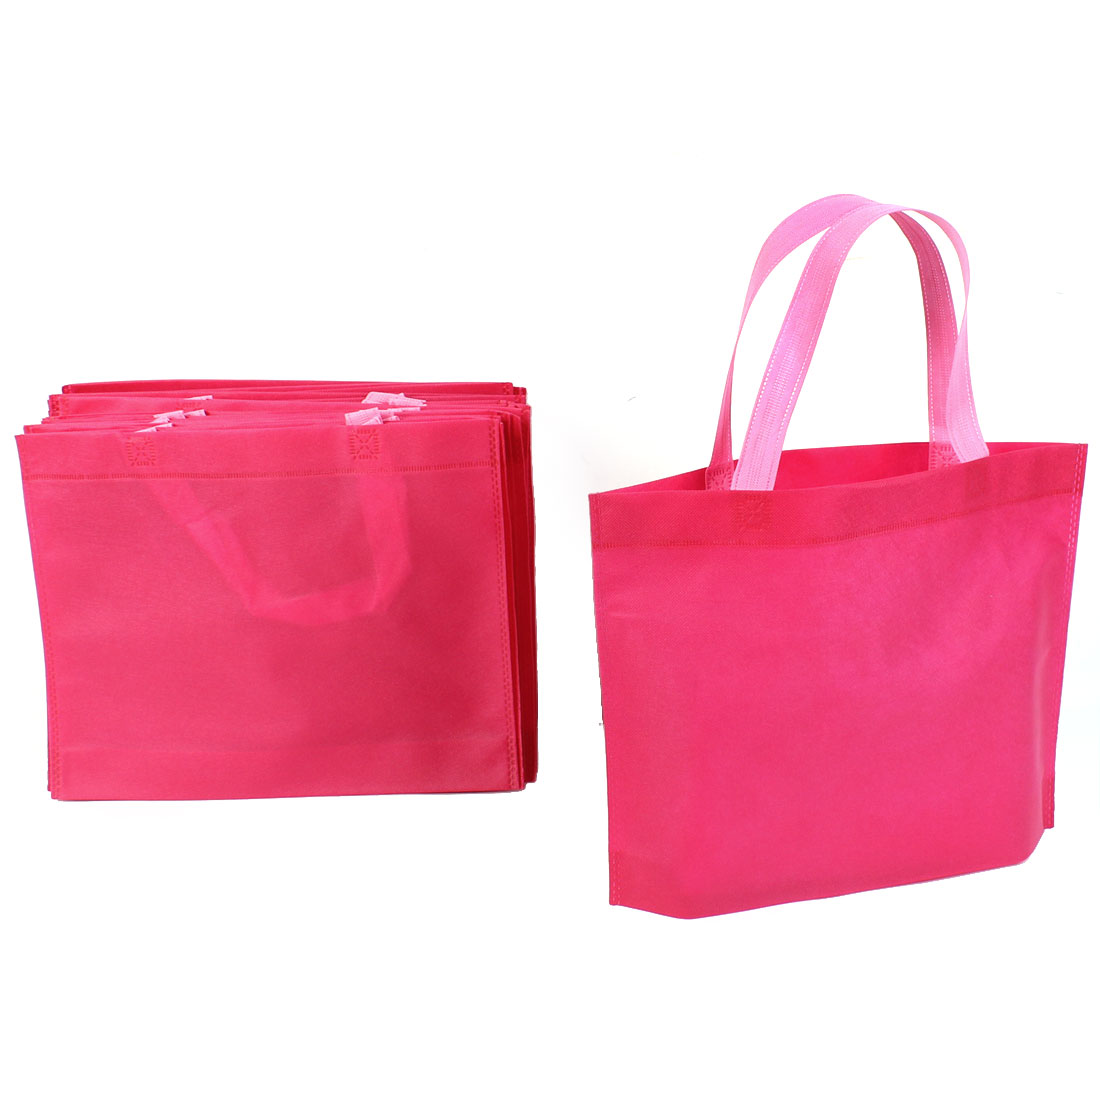 Non Woven Folding Reusable Shopping Bag 35cm x 28cm Red 20 Pcs